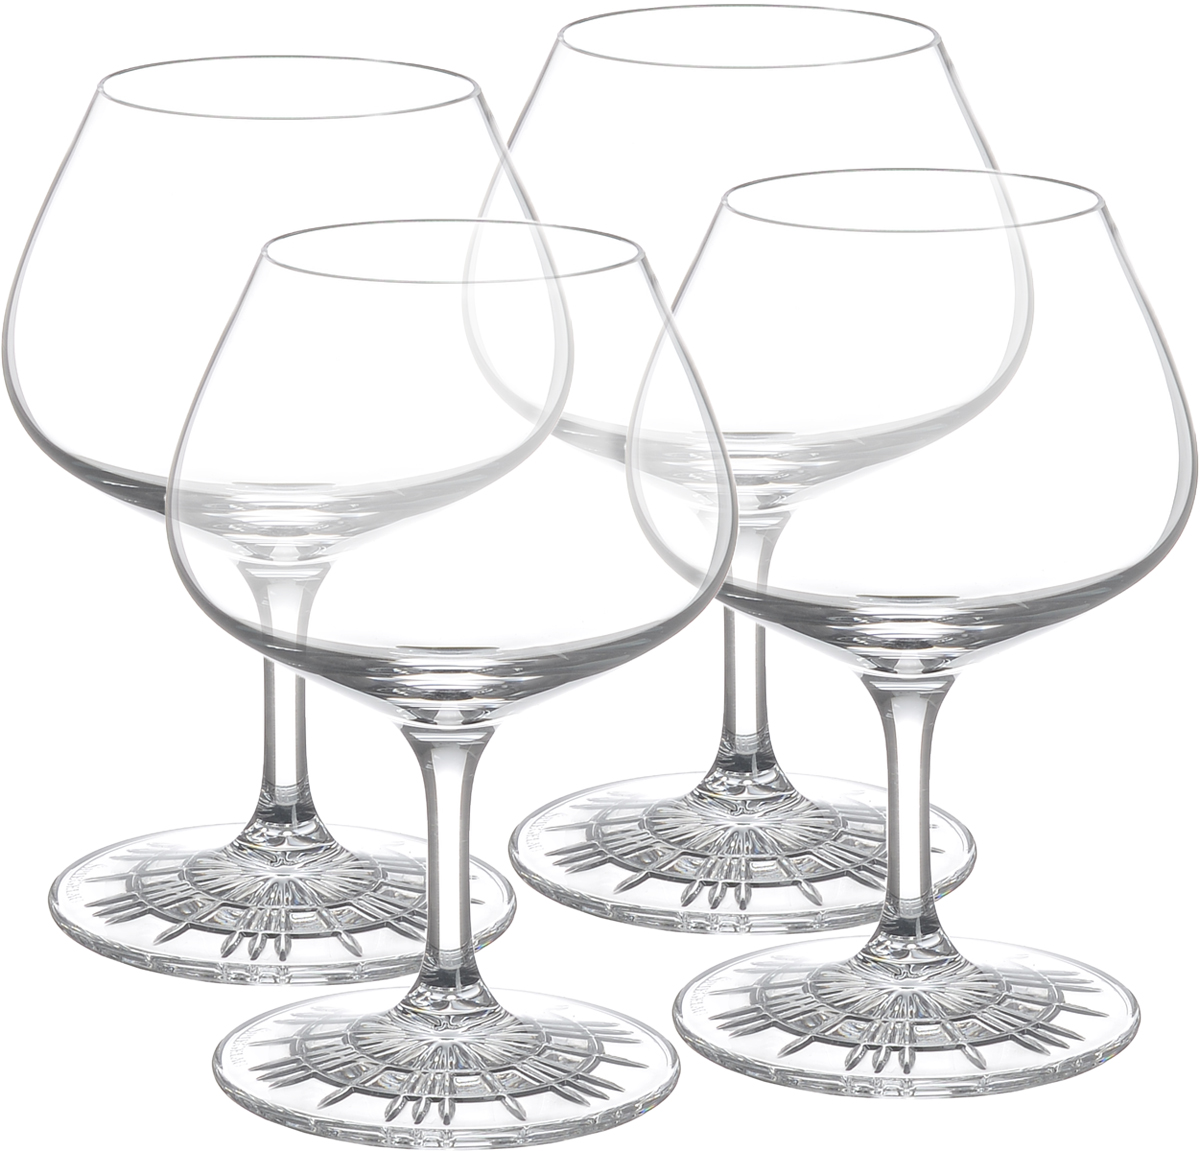 Набор бокалов для коньяка Spiegelau Perfect Cocktail Glass, 205 мл, 4 шт original new 7 inch tft lcd screen 5mm 800 rgb 480 for innolux at070tn90 v 1 tft lcd display screen panel free shipping